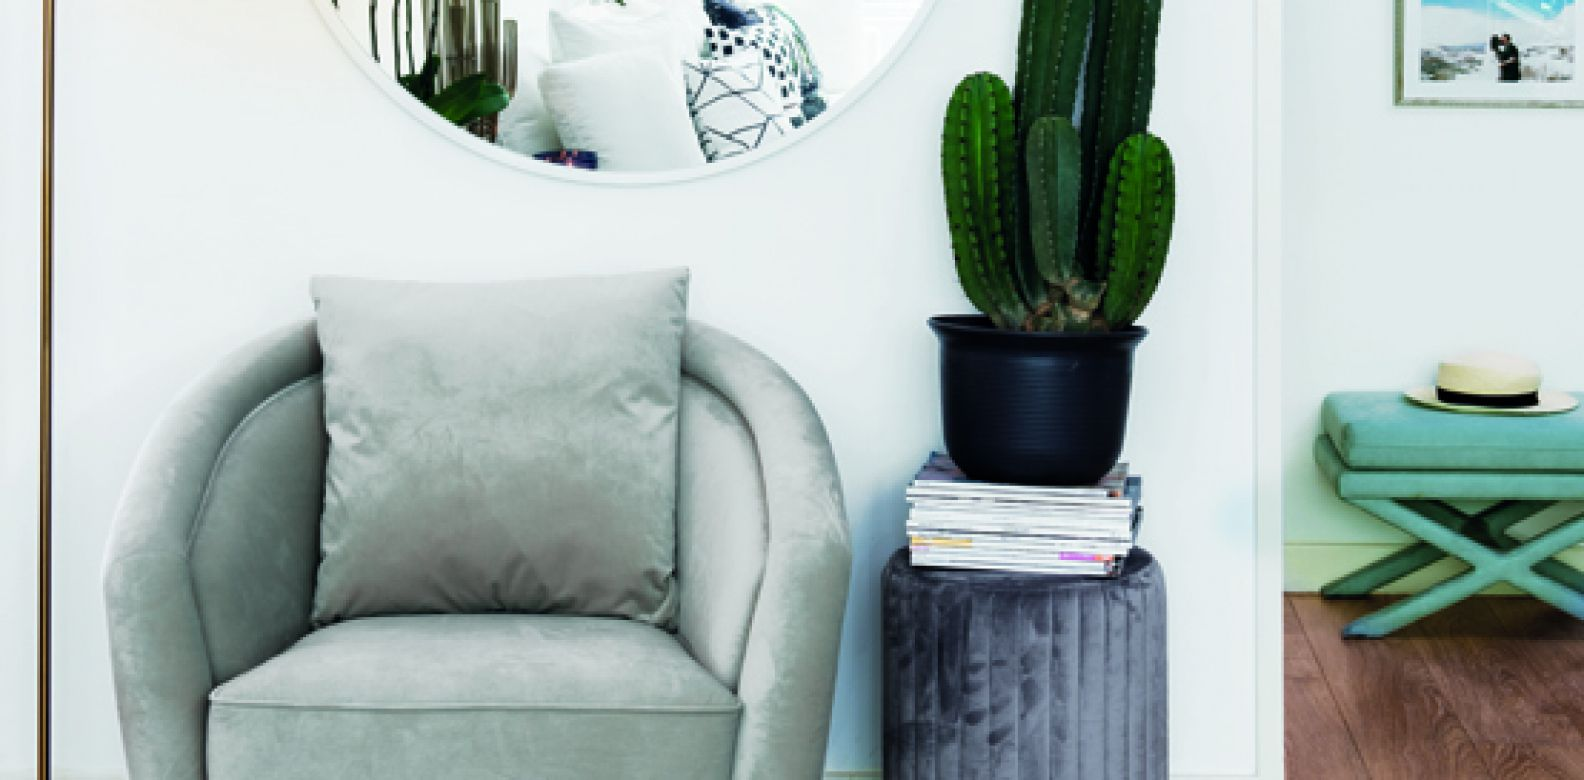 An inviting velvet armchair and ottoman invite you to take a moment's repose and appreciate your surroundings.